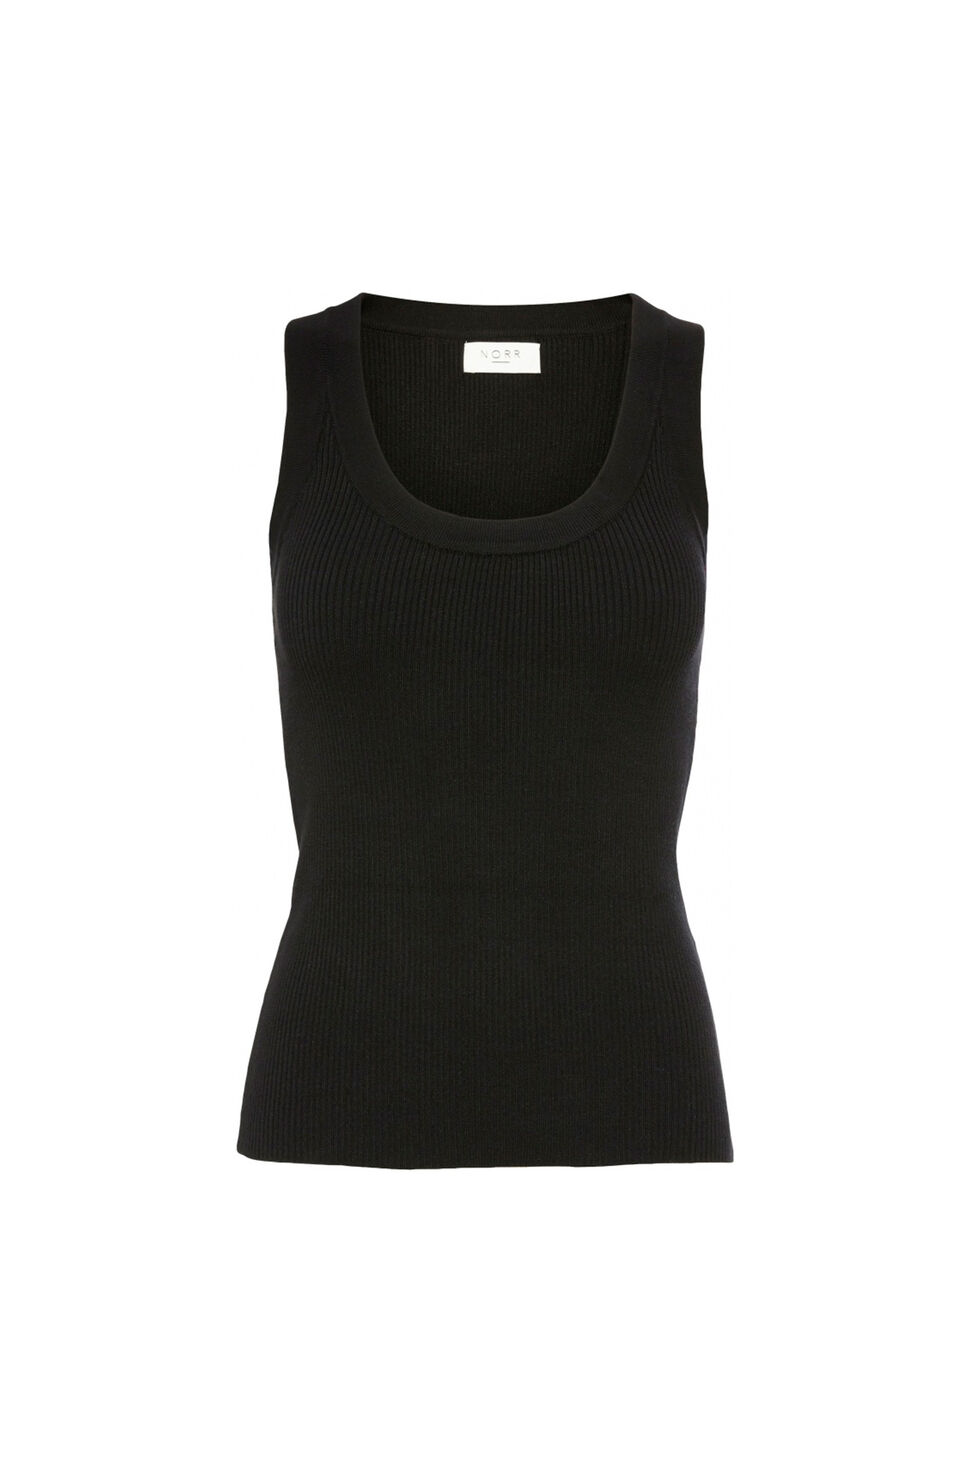 Kylie knit tank top 11861247, BLACK